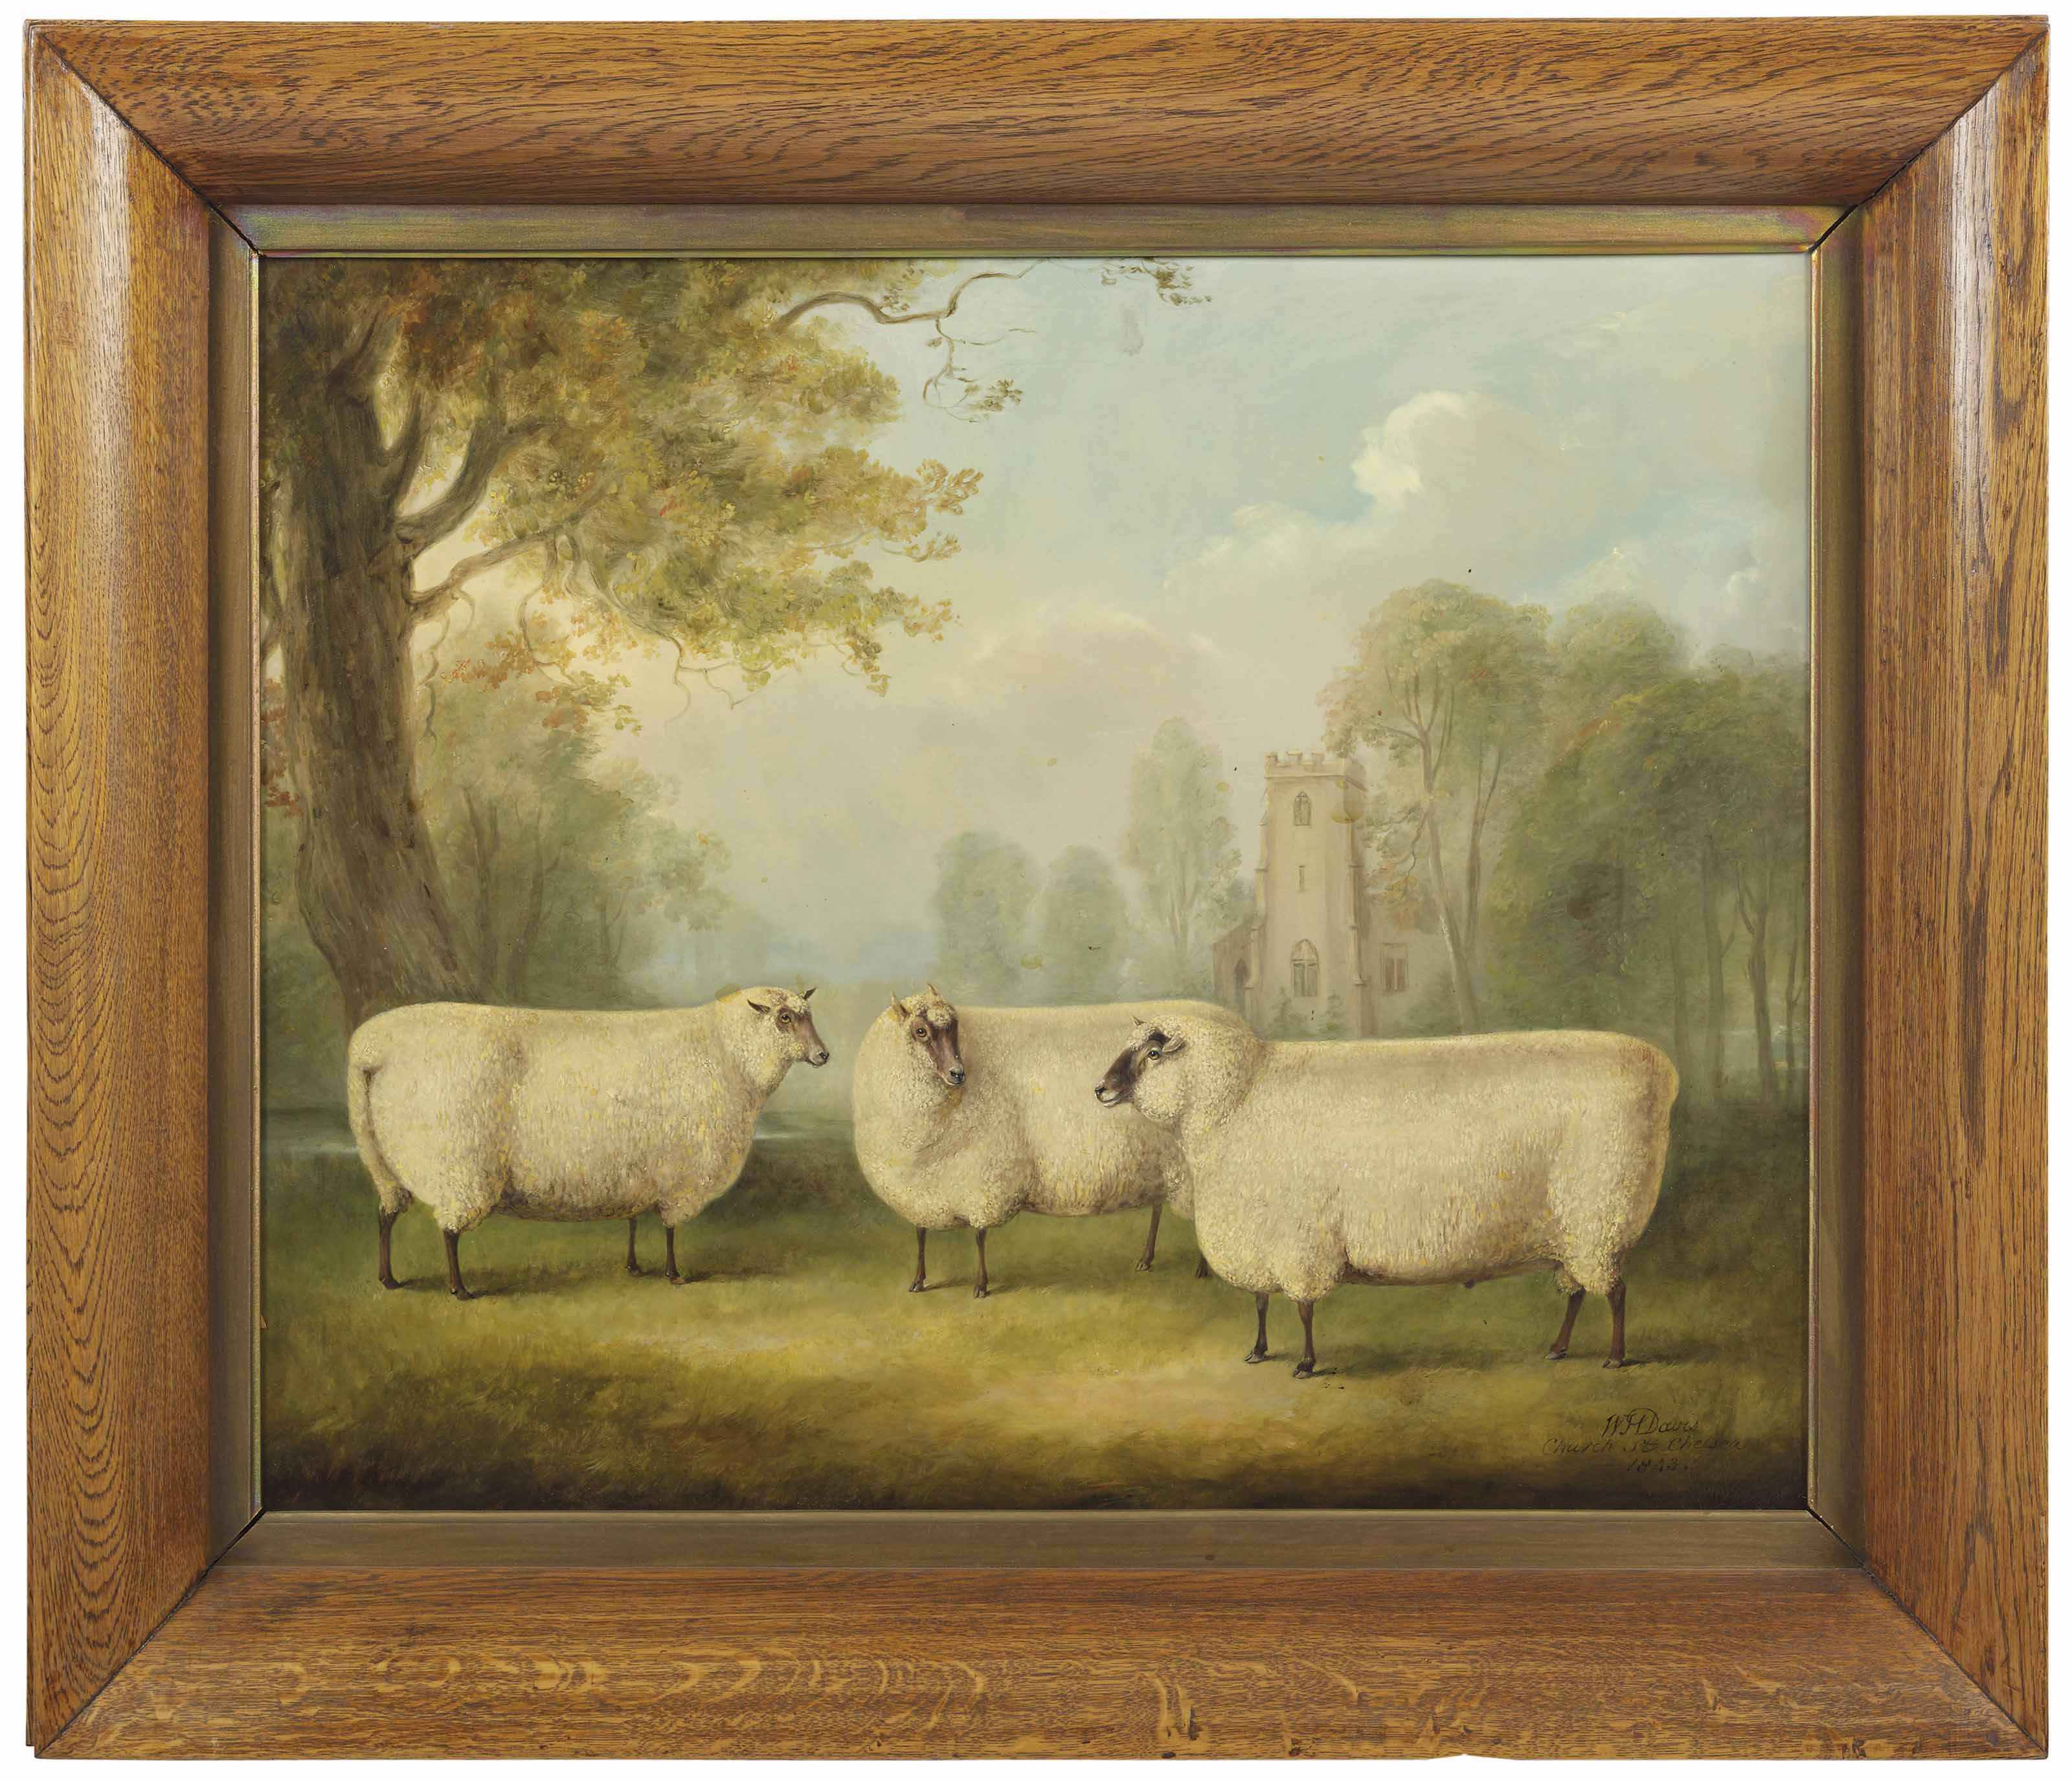 Sheep in a landscape with a church beyond